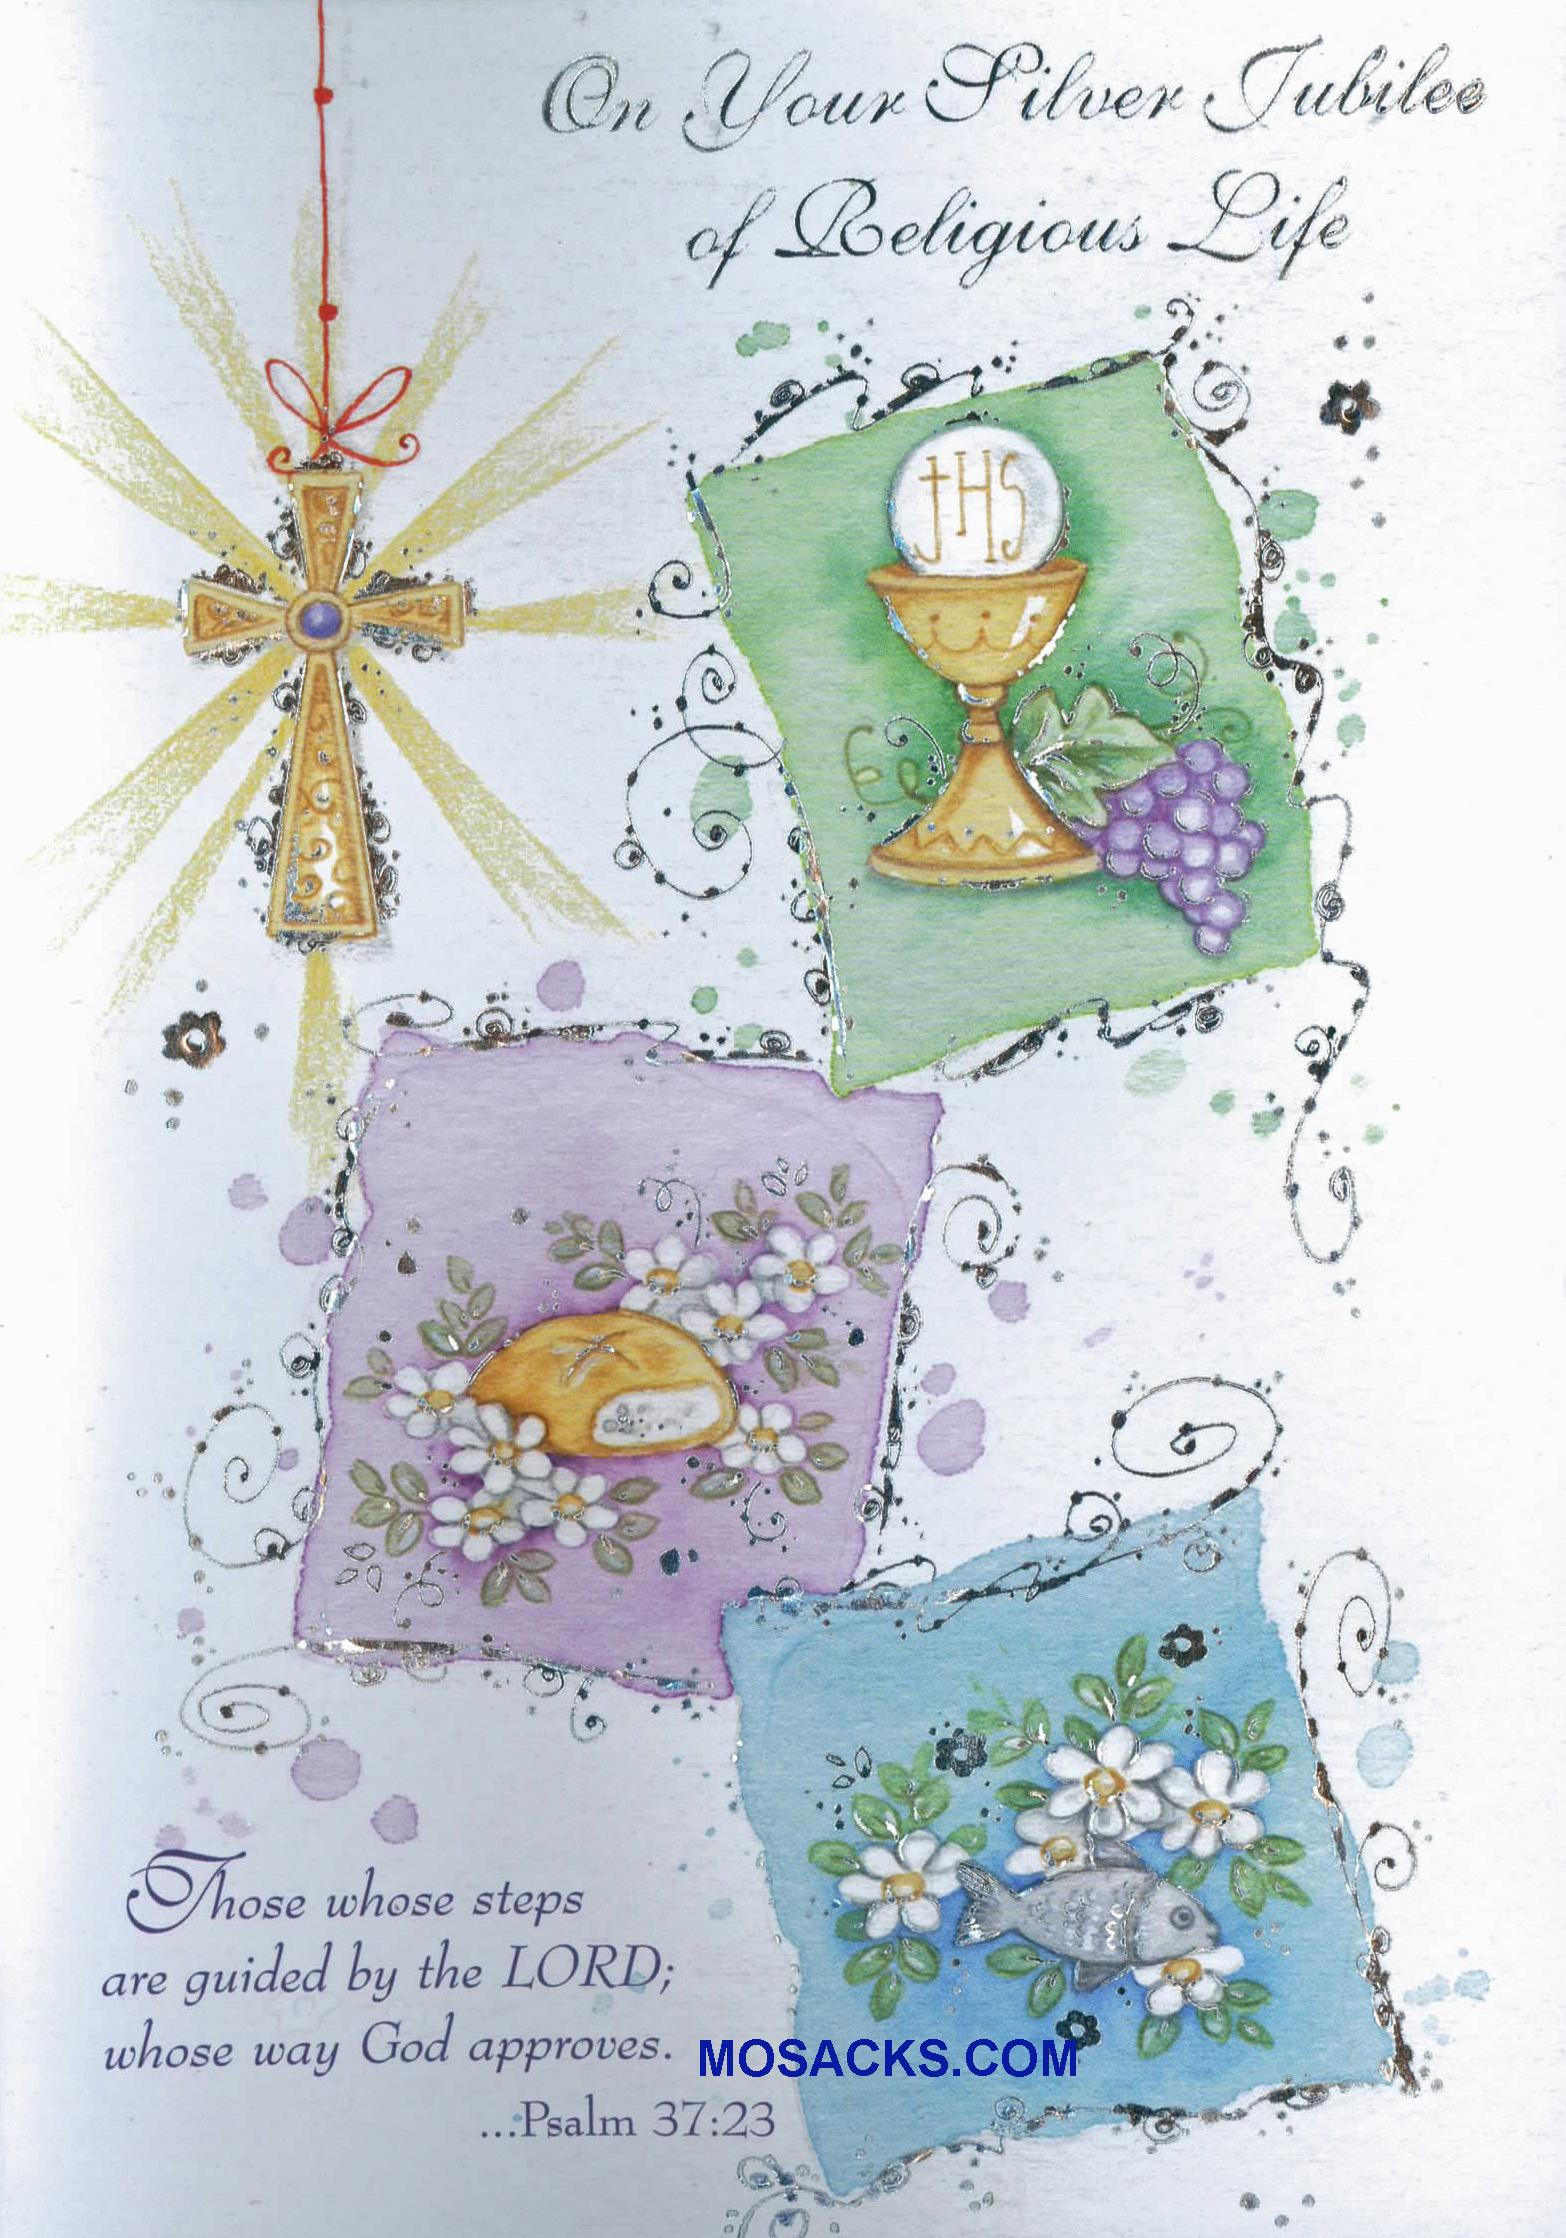 On your silver jubilee of religious life greeting card